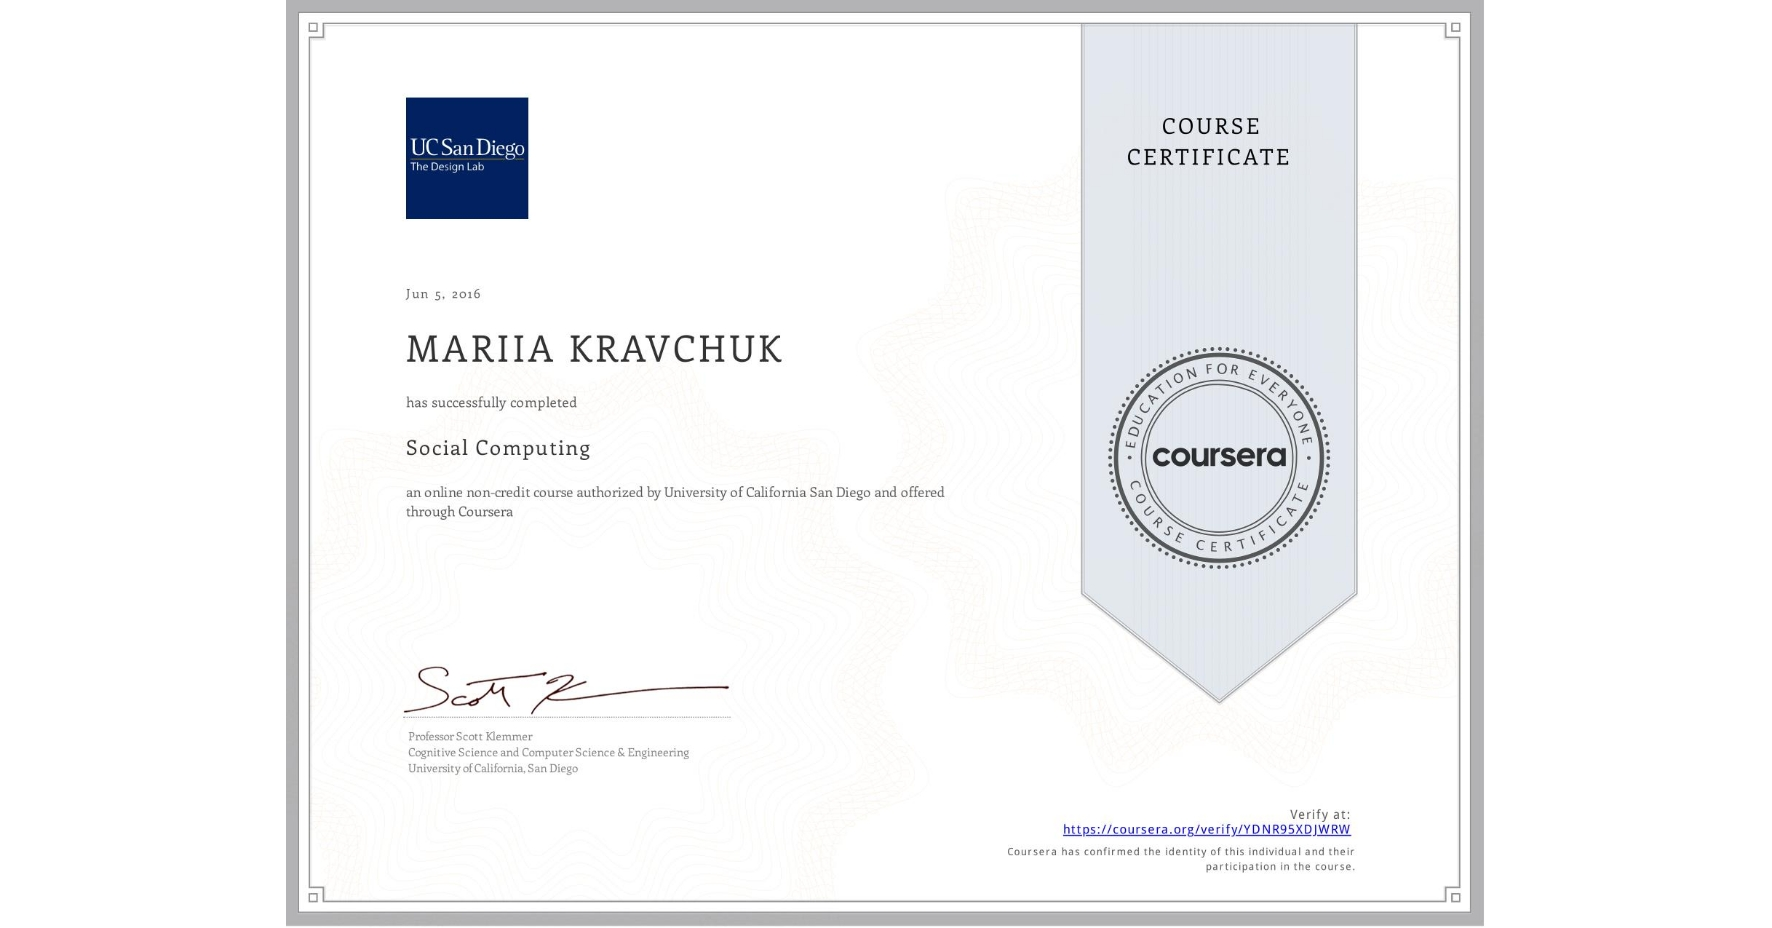 View certificate for MARIIA KRAVCHUK, Social Computing, an online non-credit course authorized by University of California San Diego and offered through Coursera